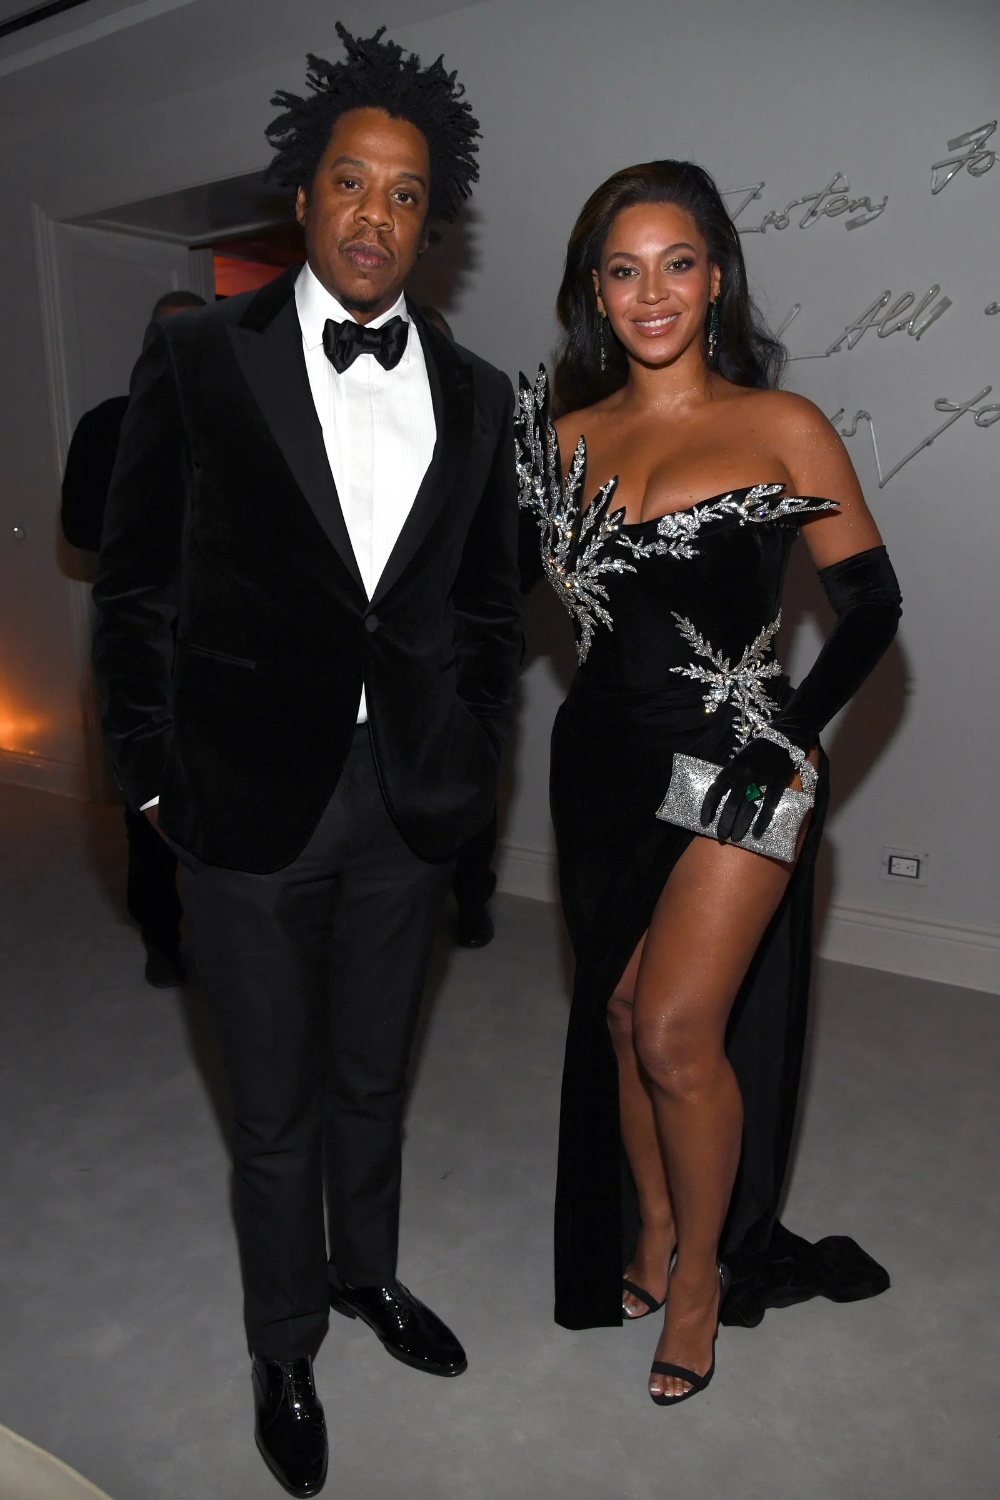 The 10 BestDressed Men of the Week in 2020 Beyonce and